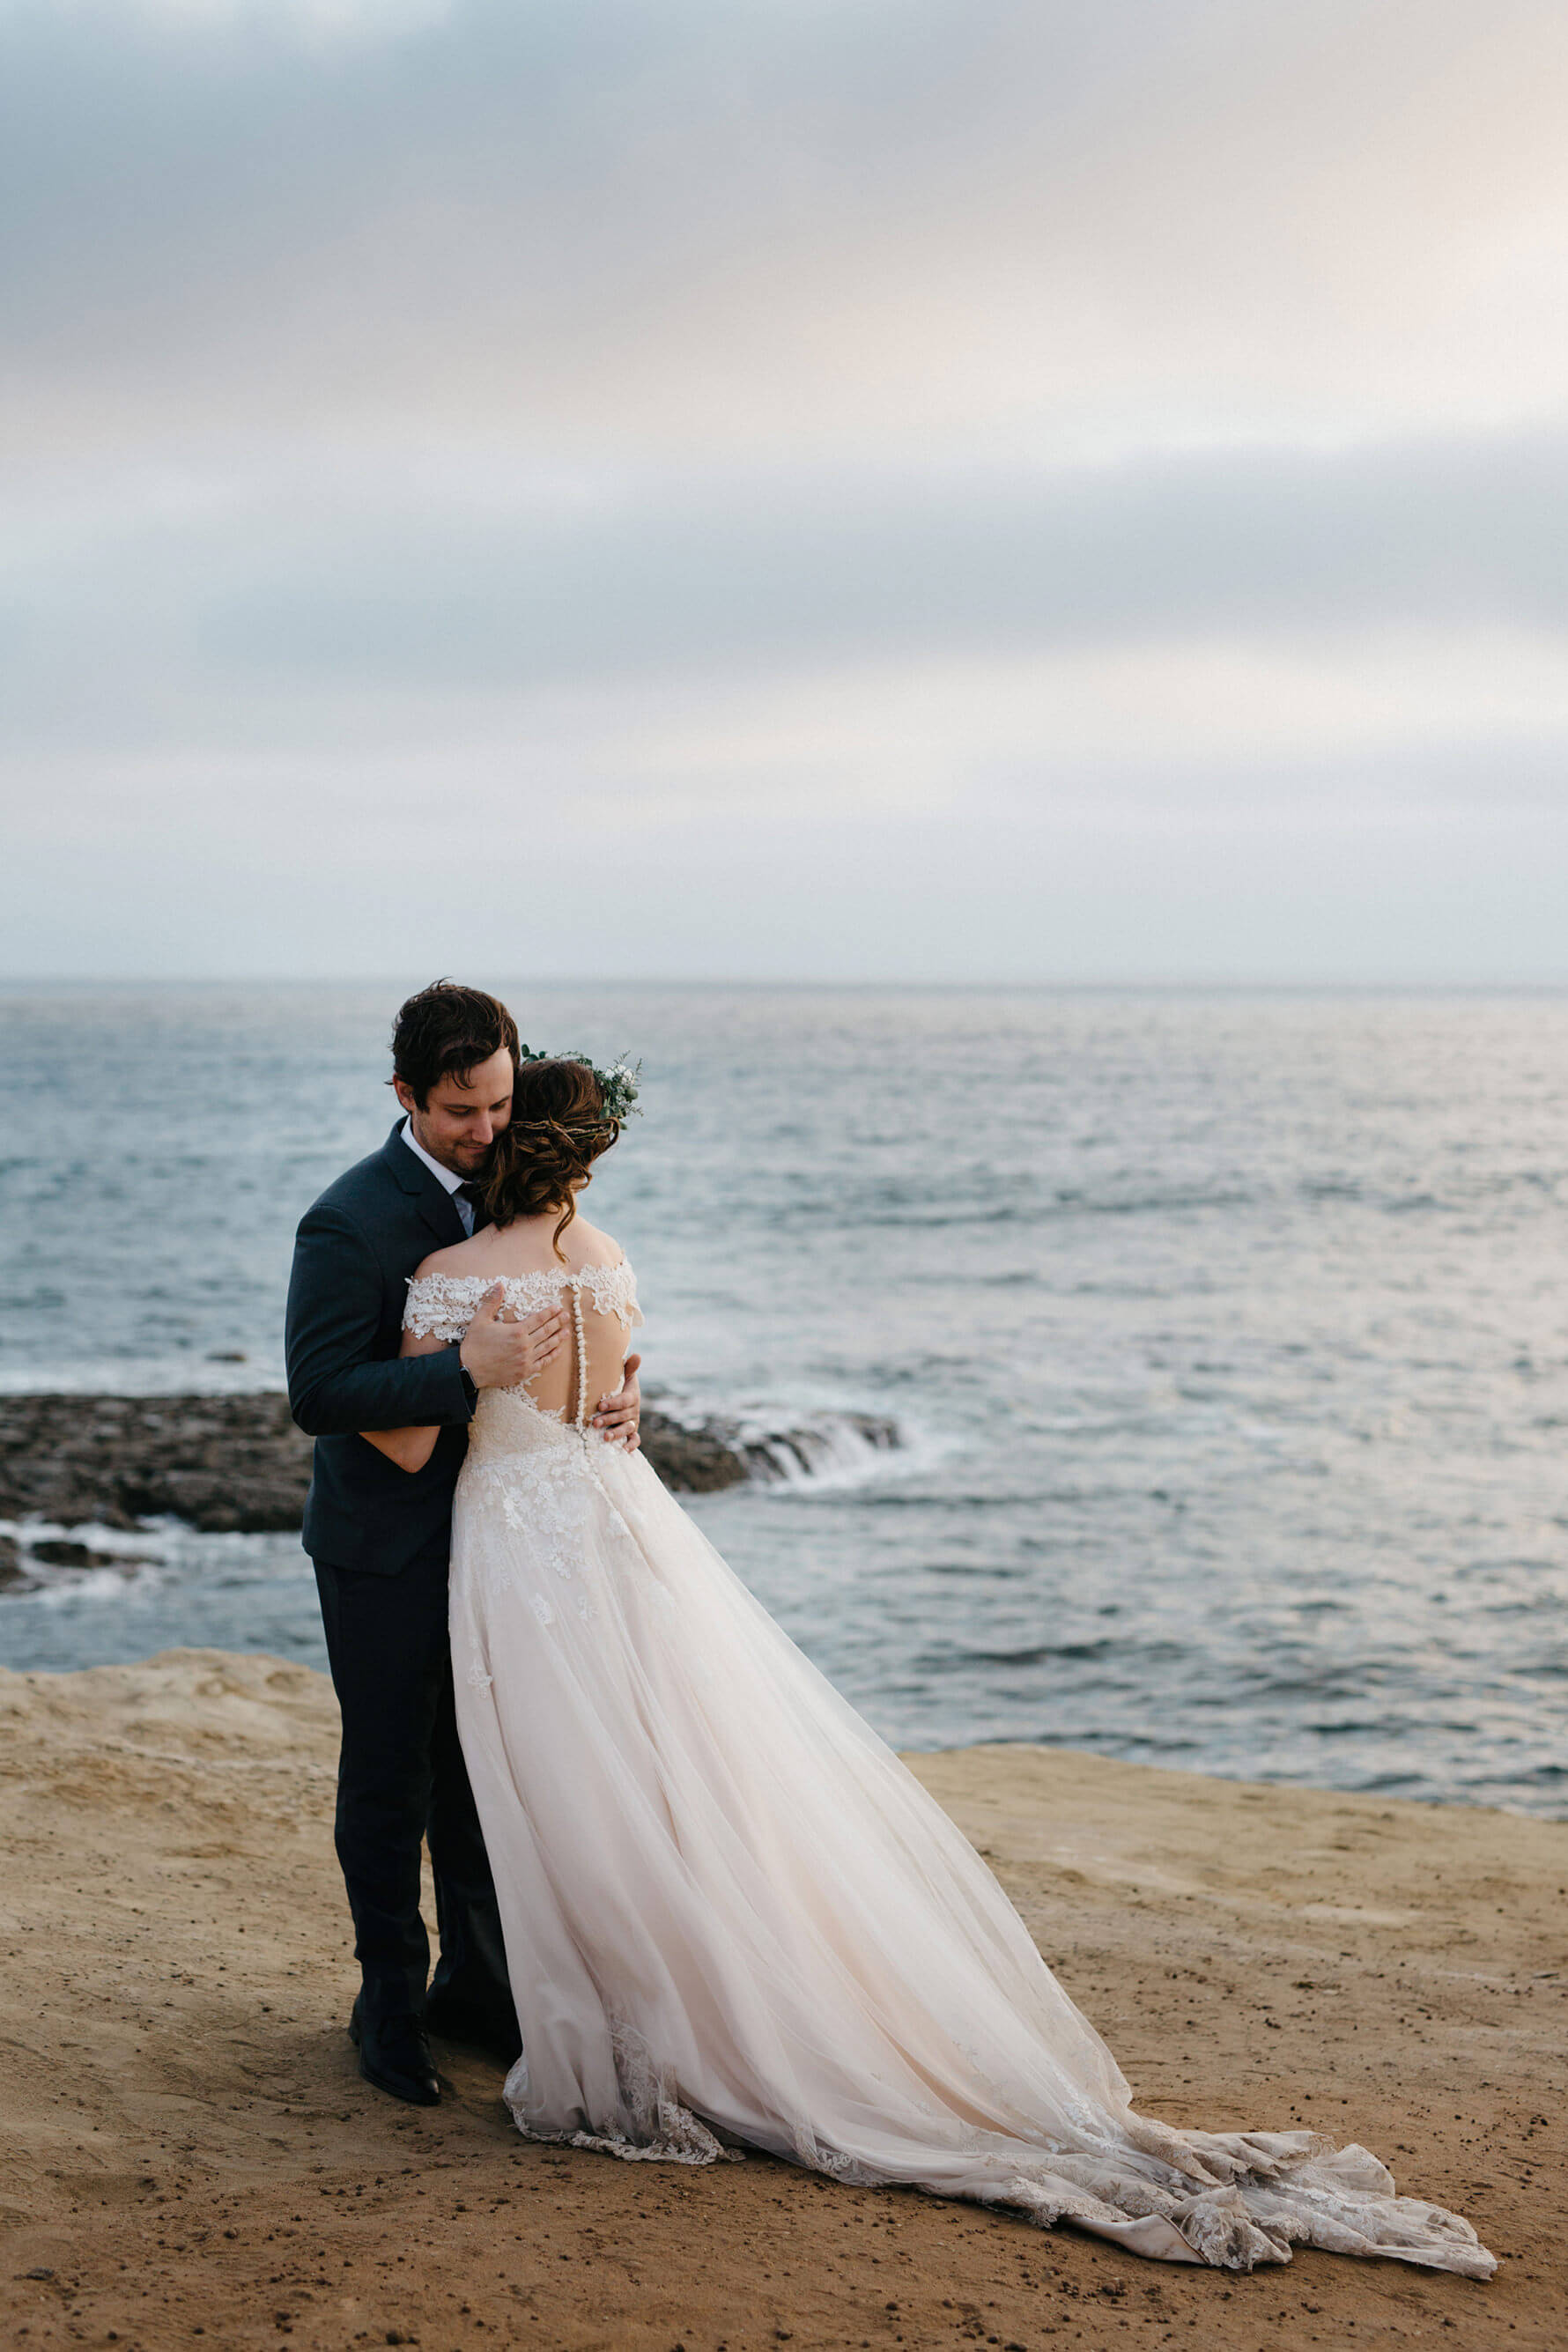 Timeless Romance San Diego Bride & Groom Portraits | Lauren DeGracia